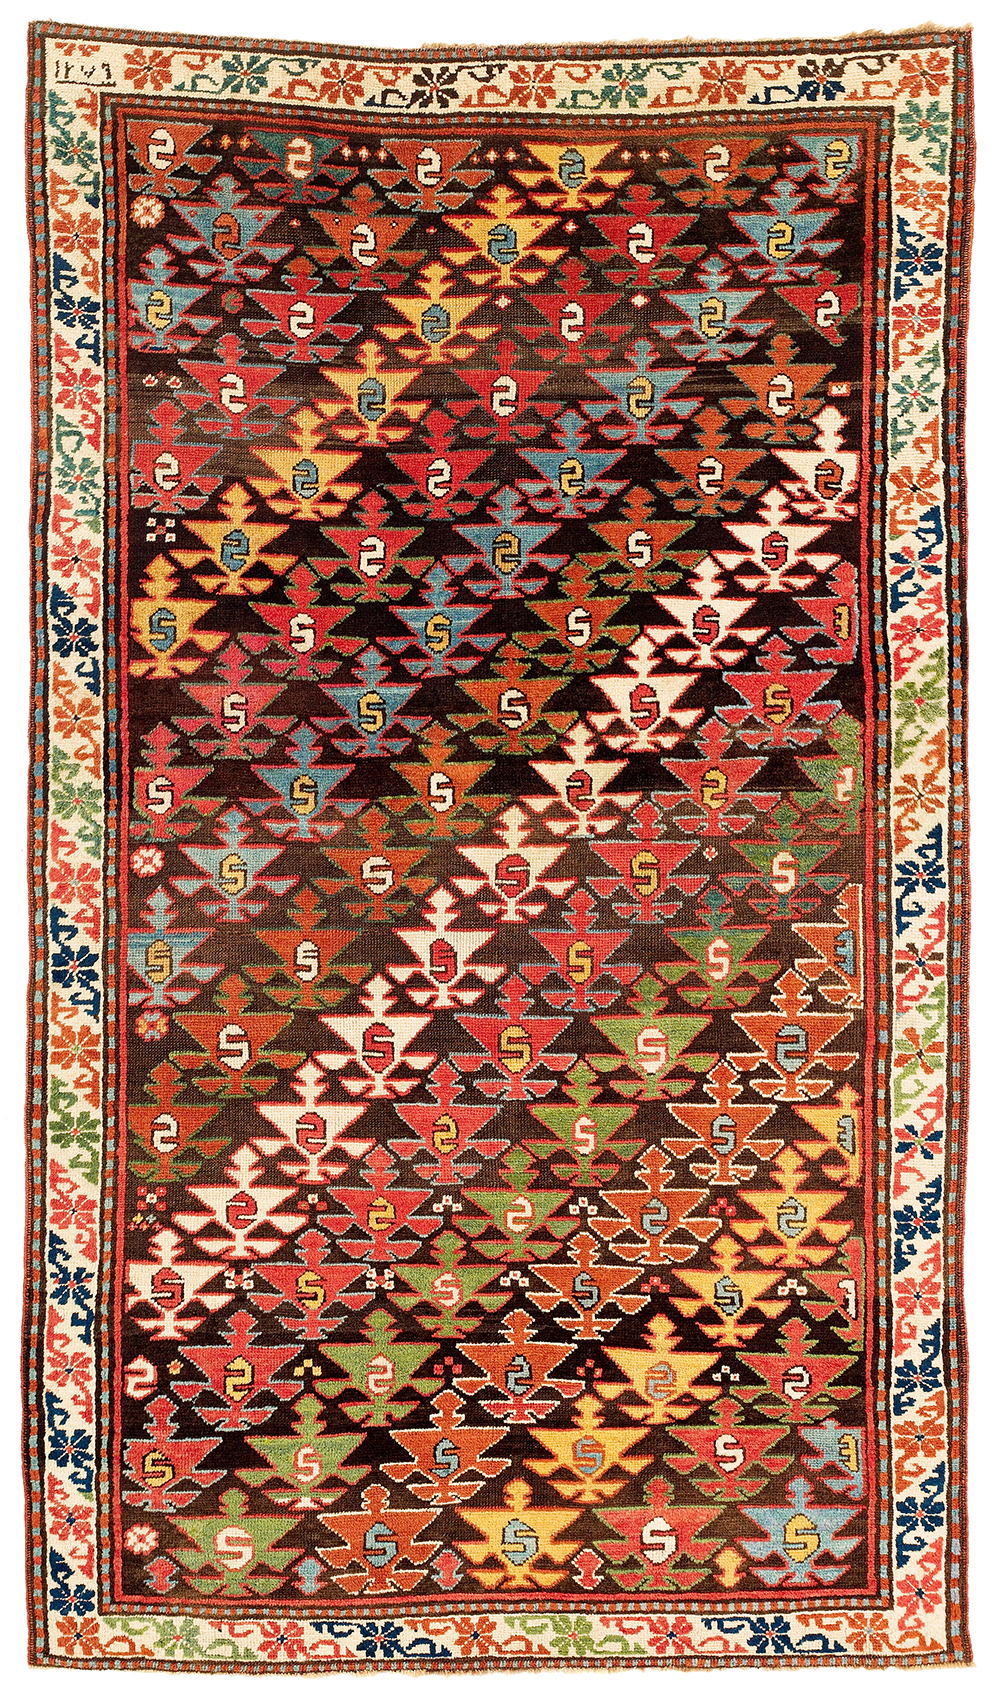 Lot 116, Caucasian Shahsavan carpet, dated 1279 AH (1863 AD)m estimate €8,500